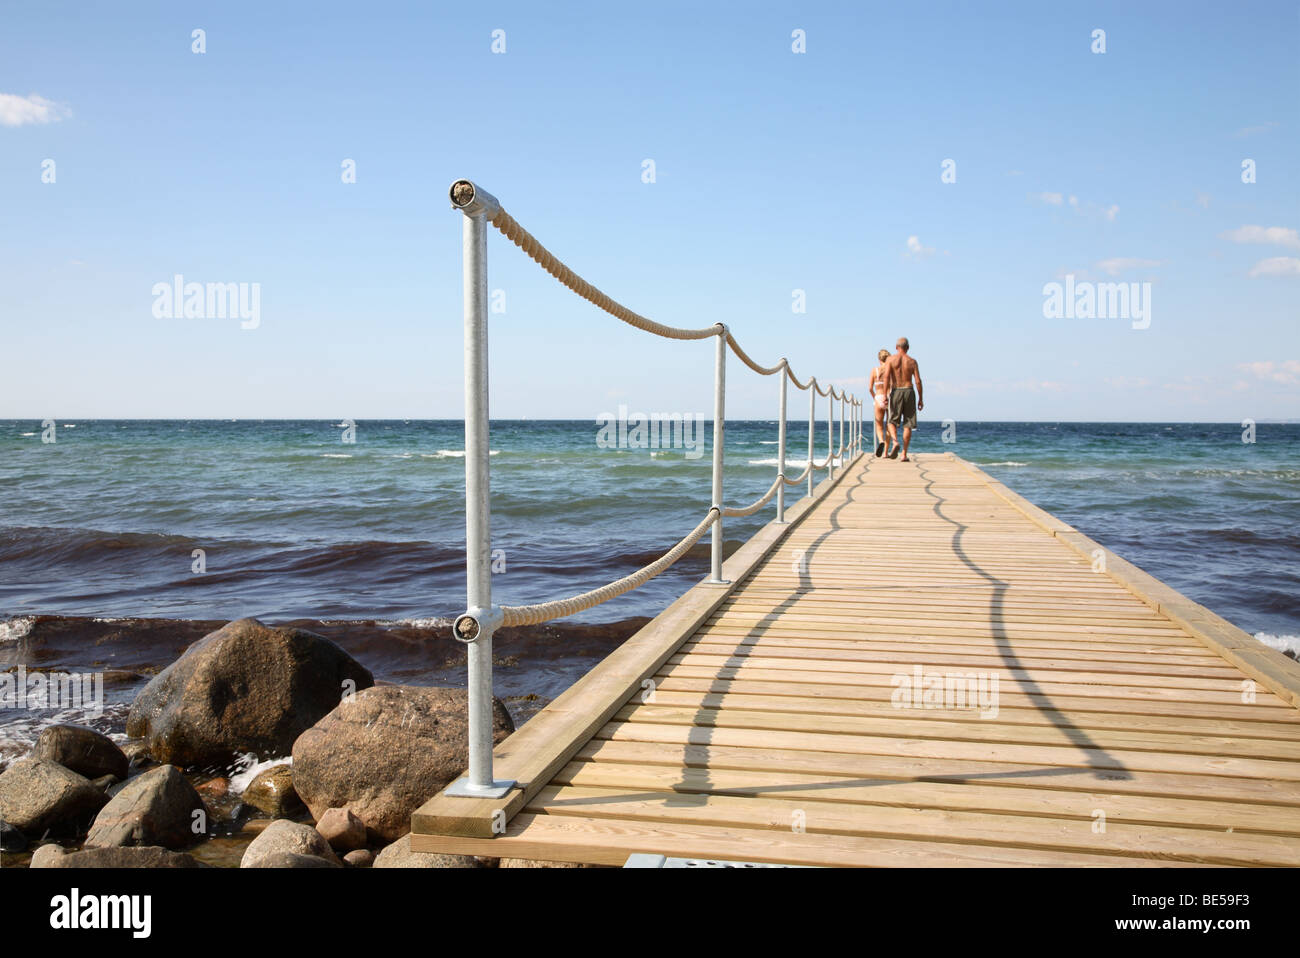 A man and a woman walking on a bathing jetty for a cooling swim in the afternoon on a warm and sunny summer day - Stock Image